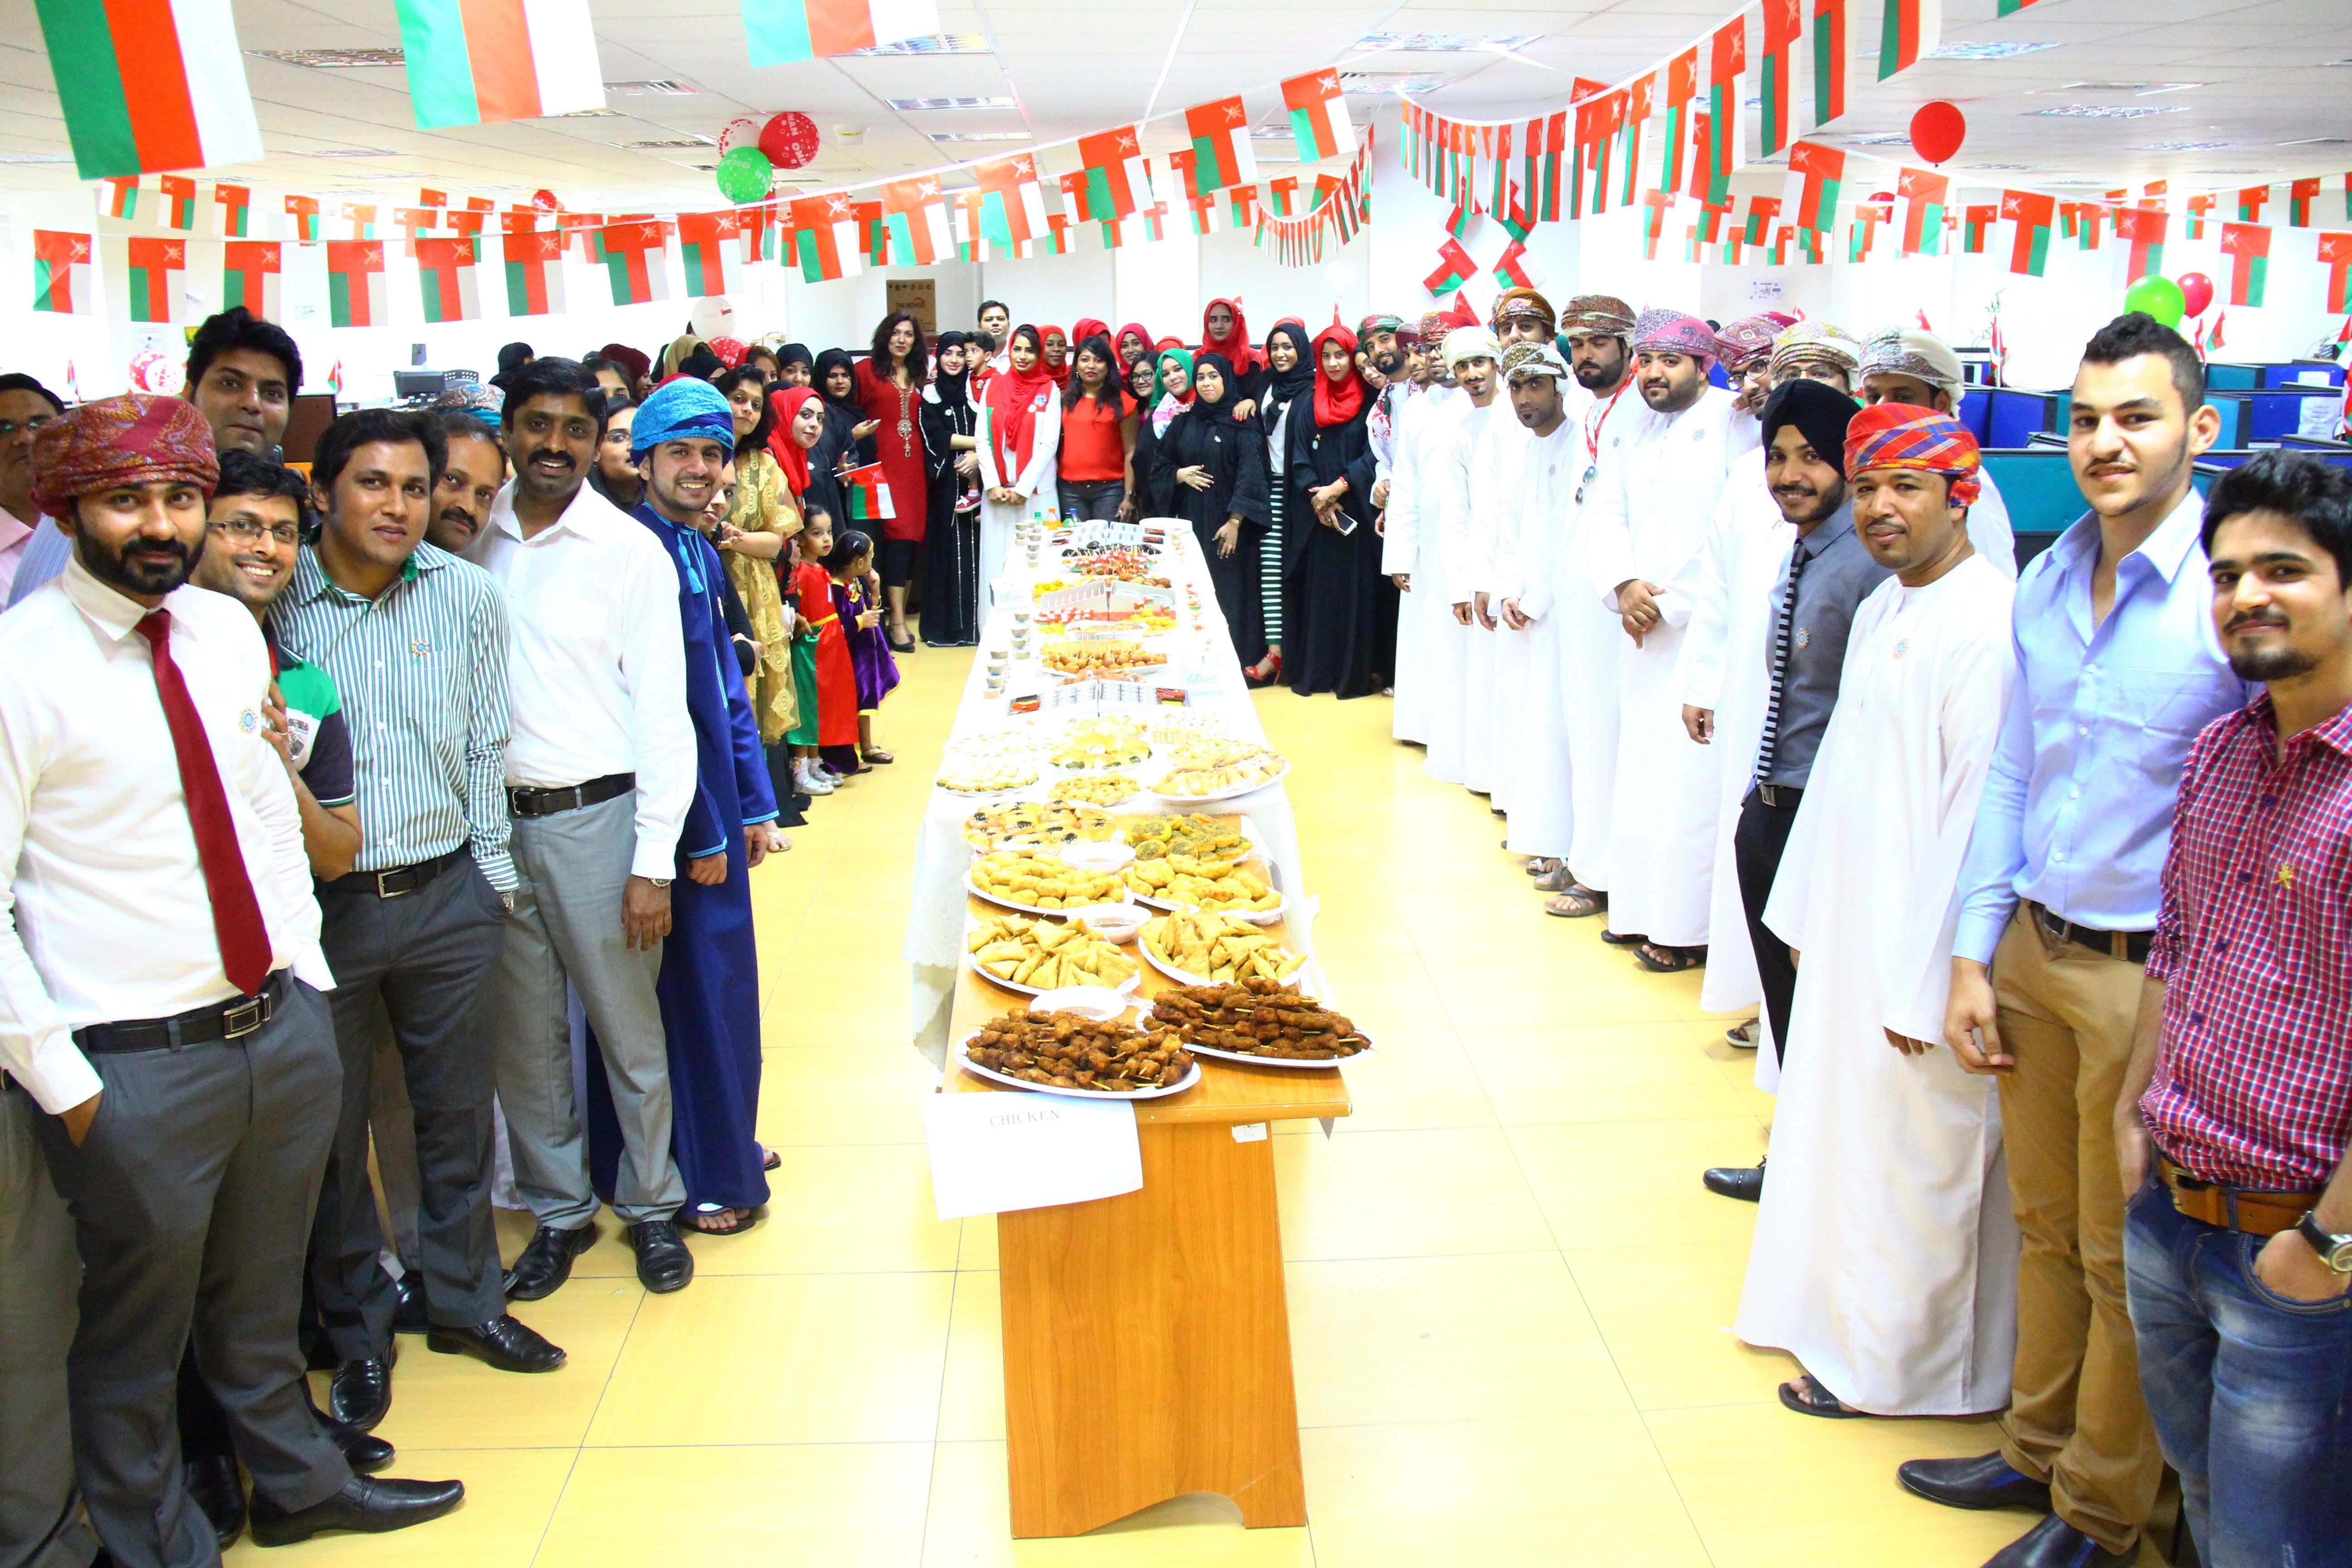 Infoline celebrates 45th National day